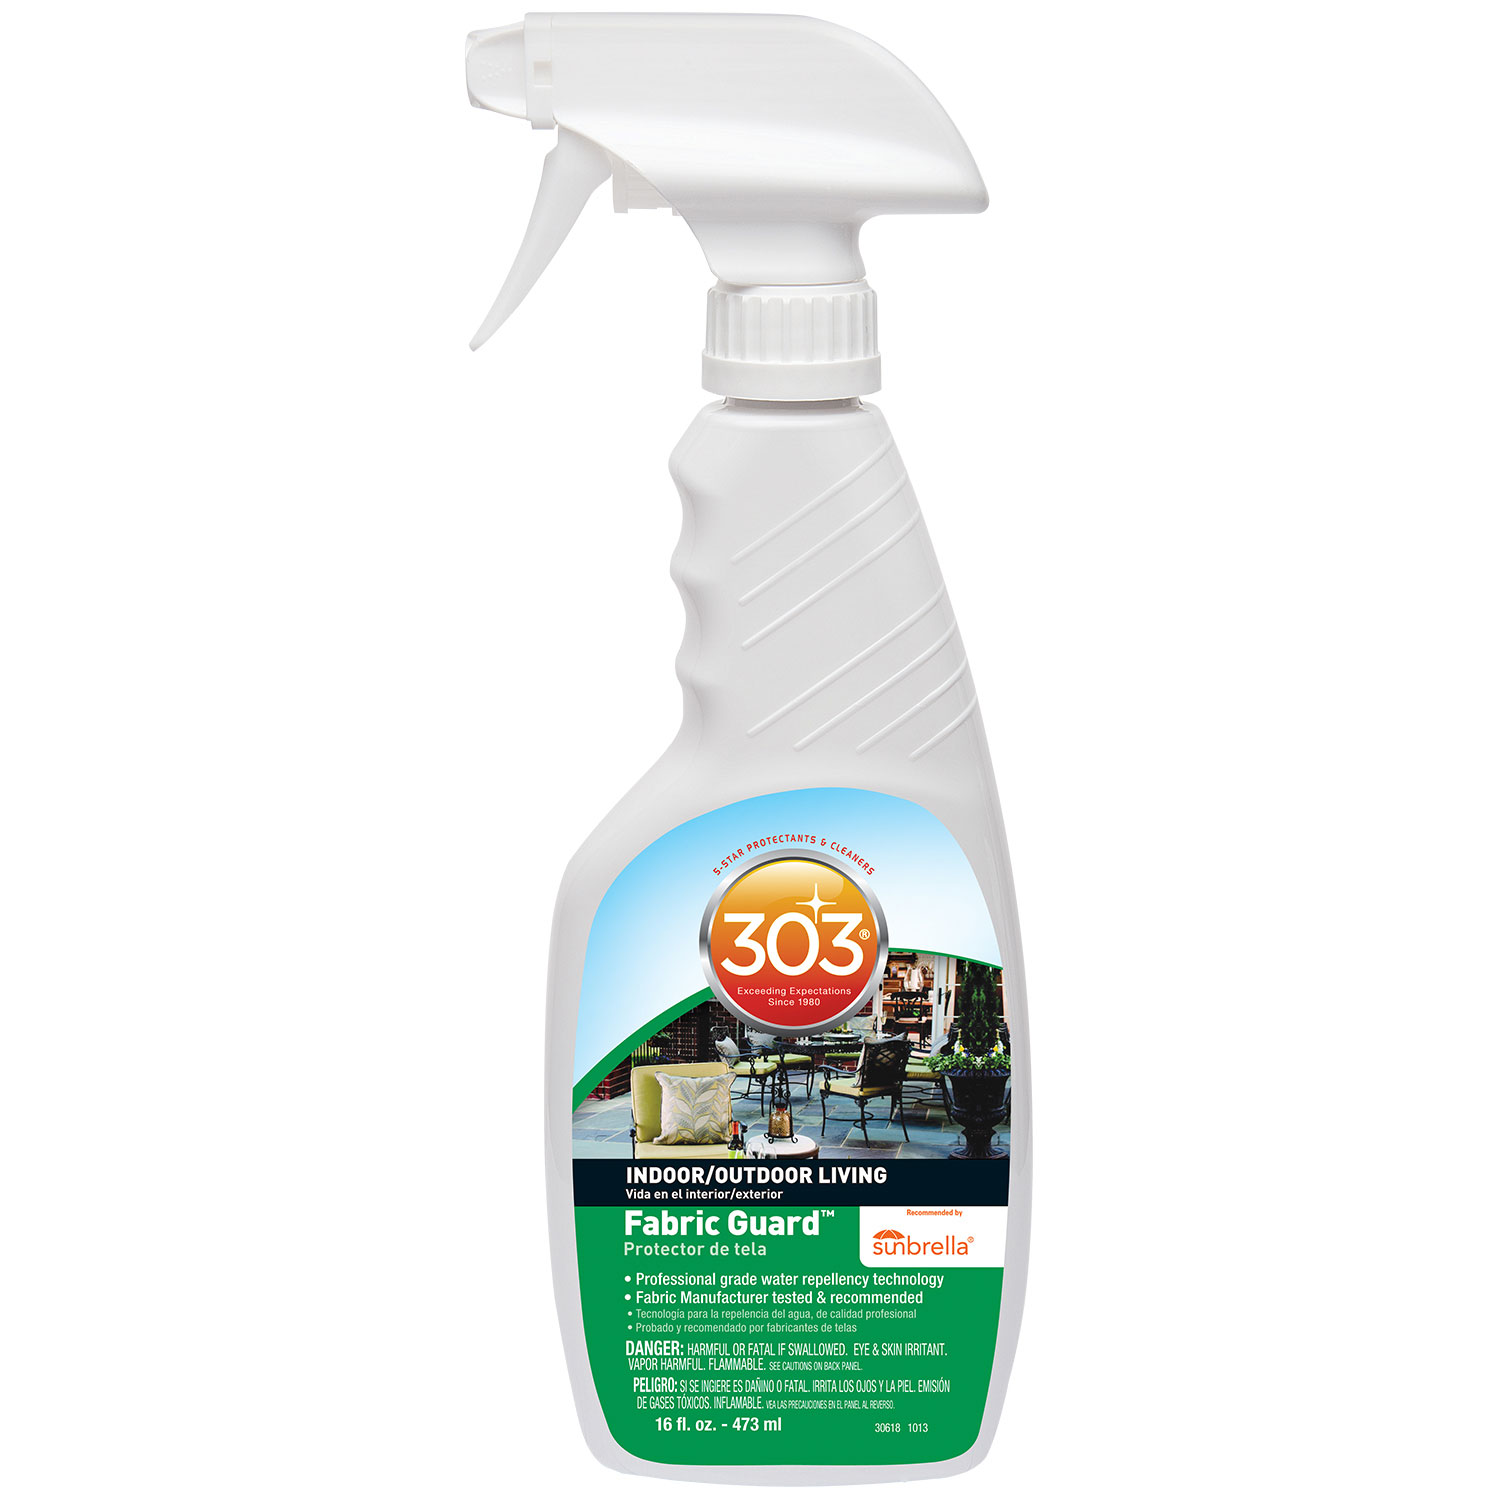 Water Repelant, 303, Fabric Guard, 16oz Spray Bottle